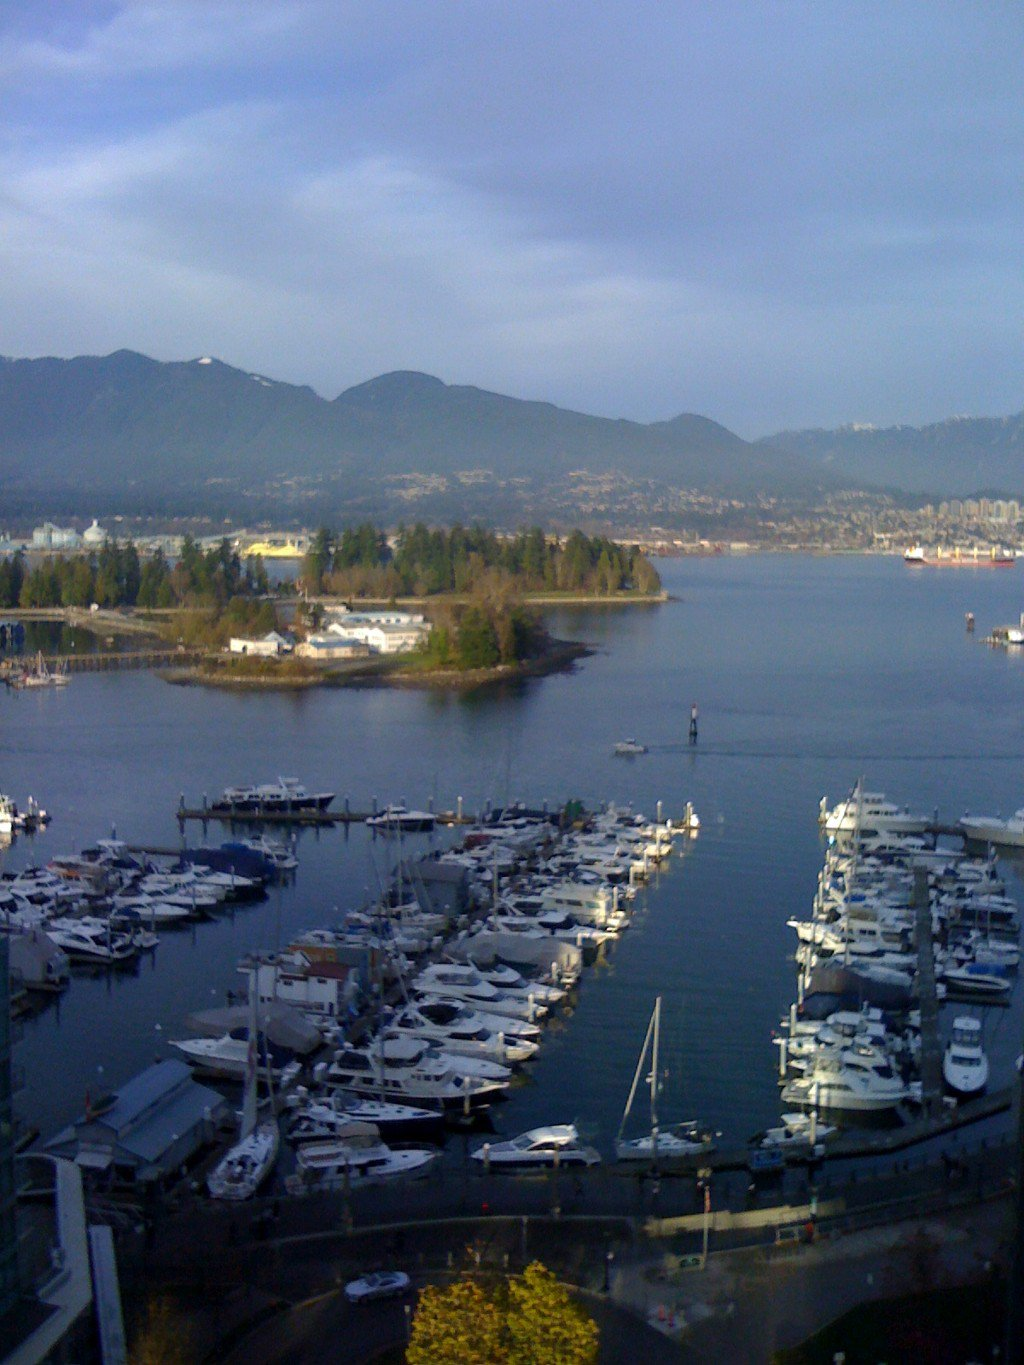 """Main Photo: 1703 588 BROUGHTON Street in Vancouver: Coal Harbour Condo for sale in """"HARBOURSIDE PARK"""" (Vancouver West)  : MLS®# V1035862"""